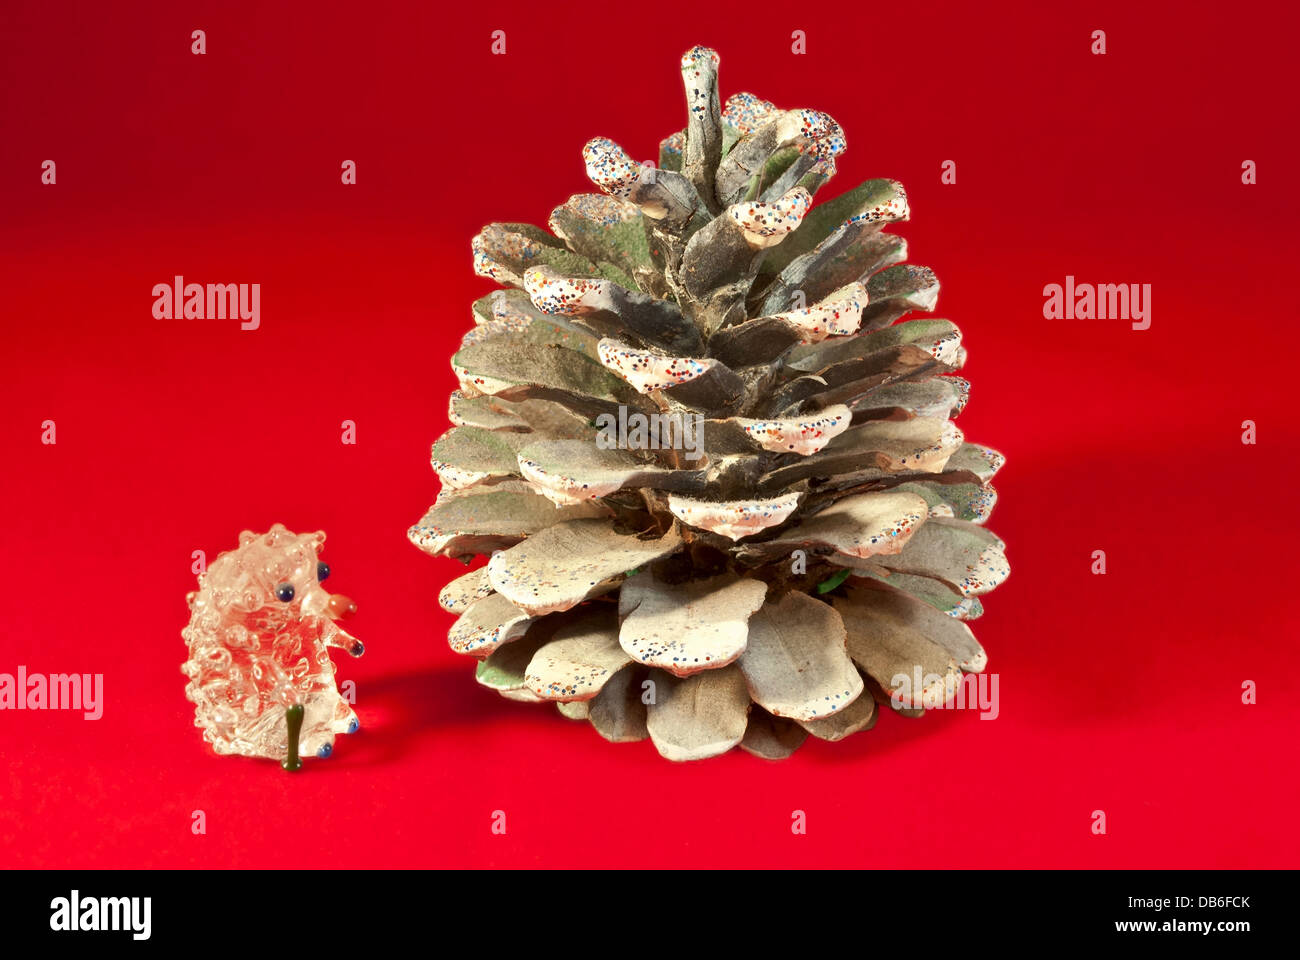 Quartz hedgehog near the fir-cones, isolated on a red background. - Stock Image